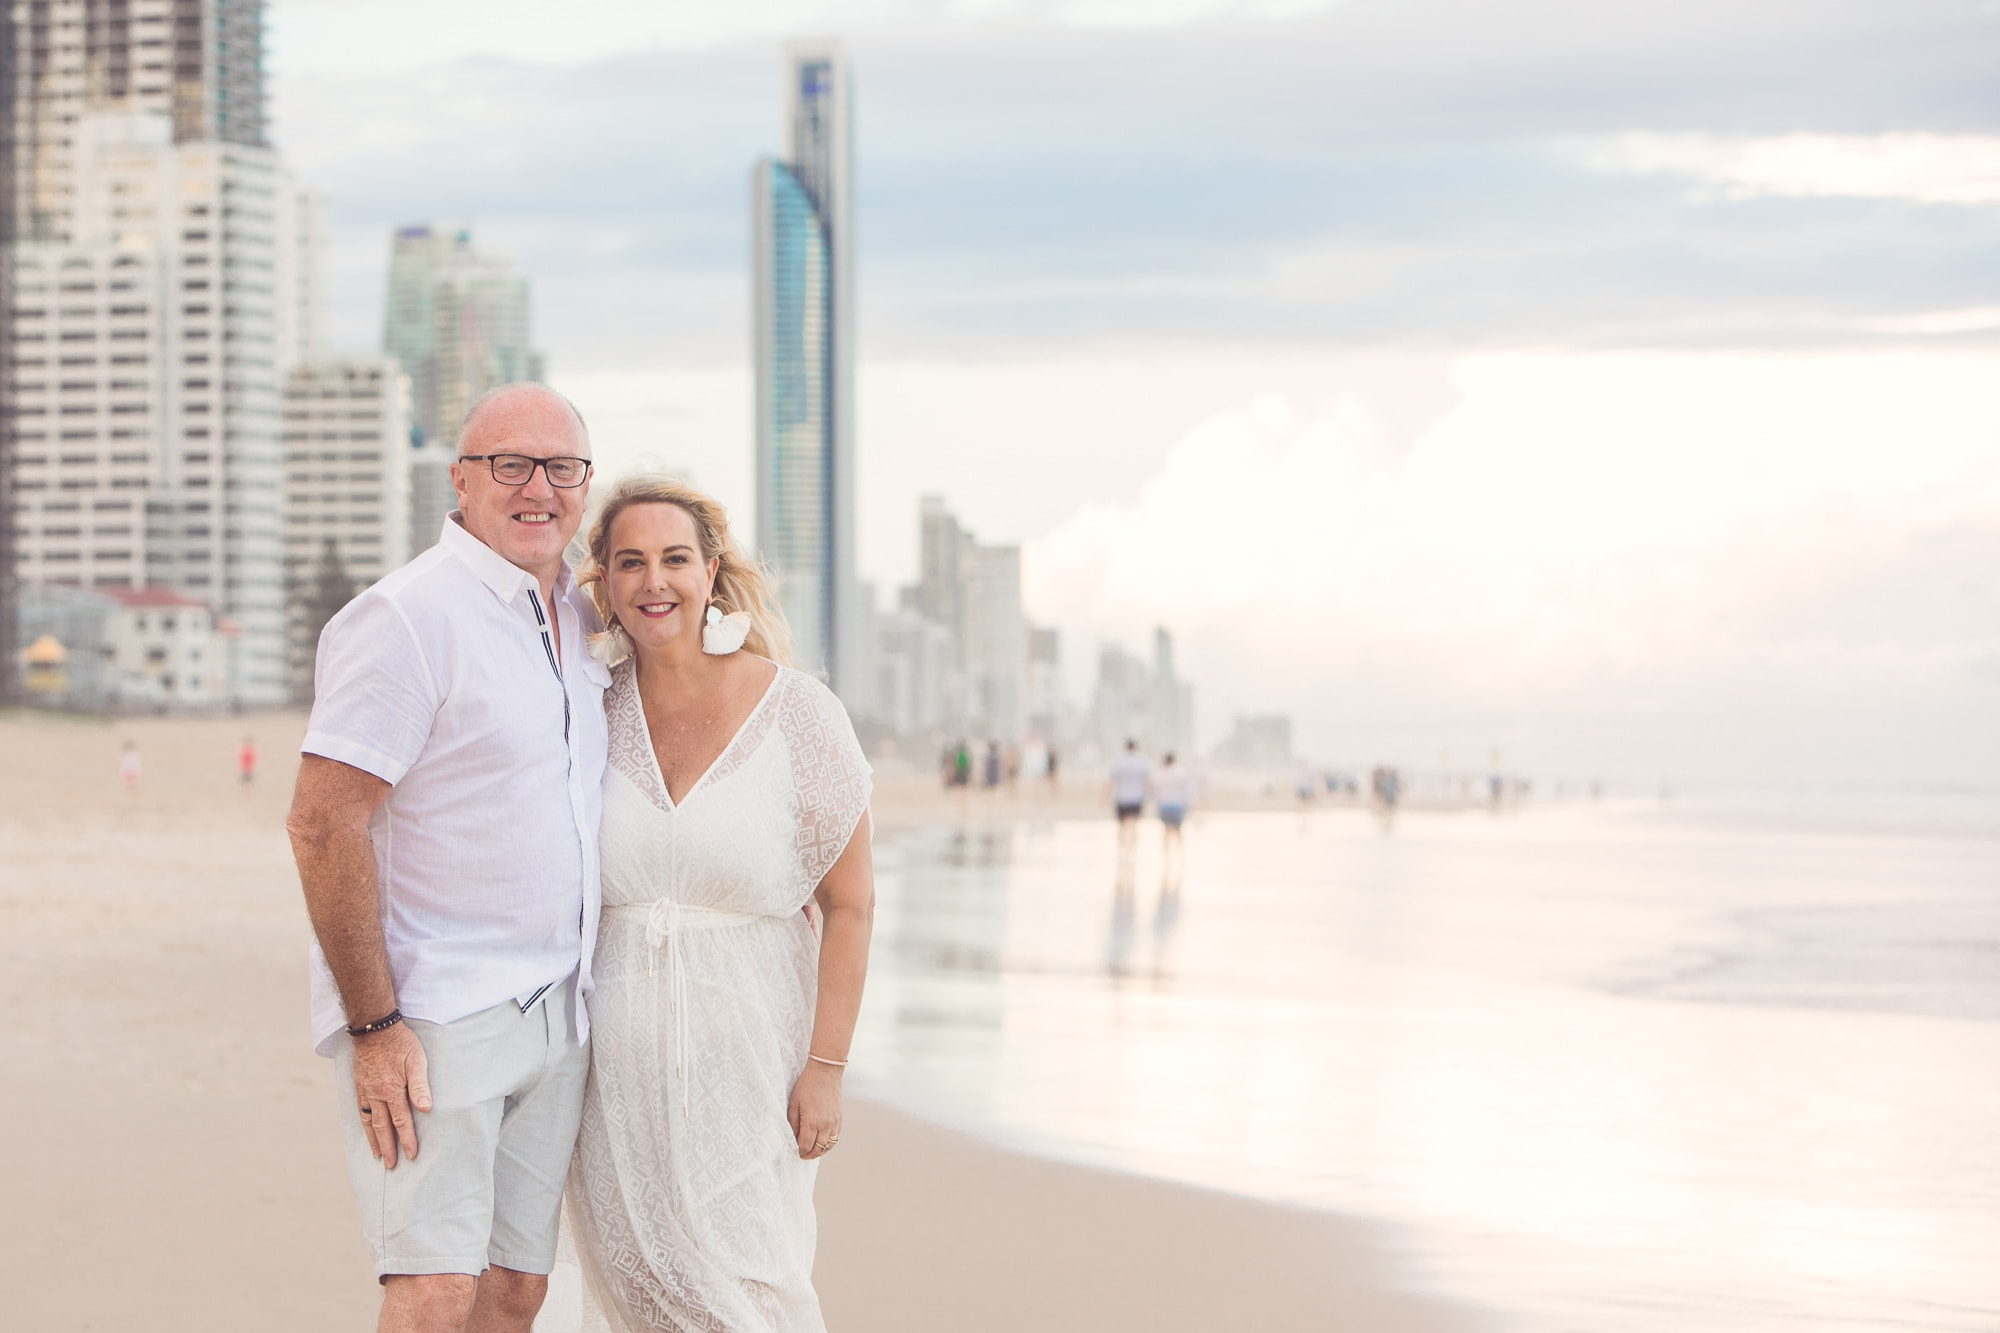 Couples Portrait Photography Surfers Paradise